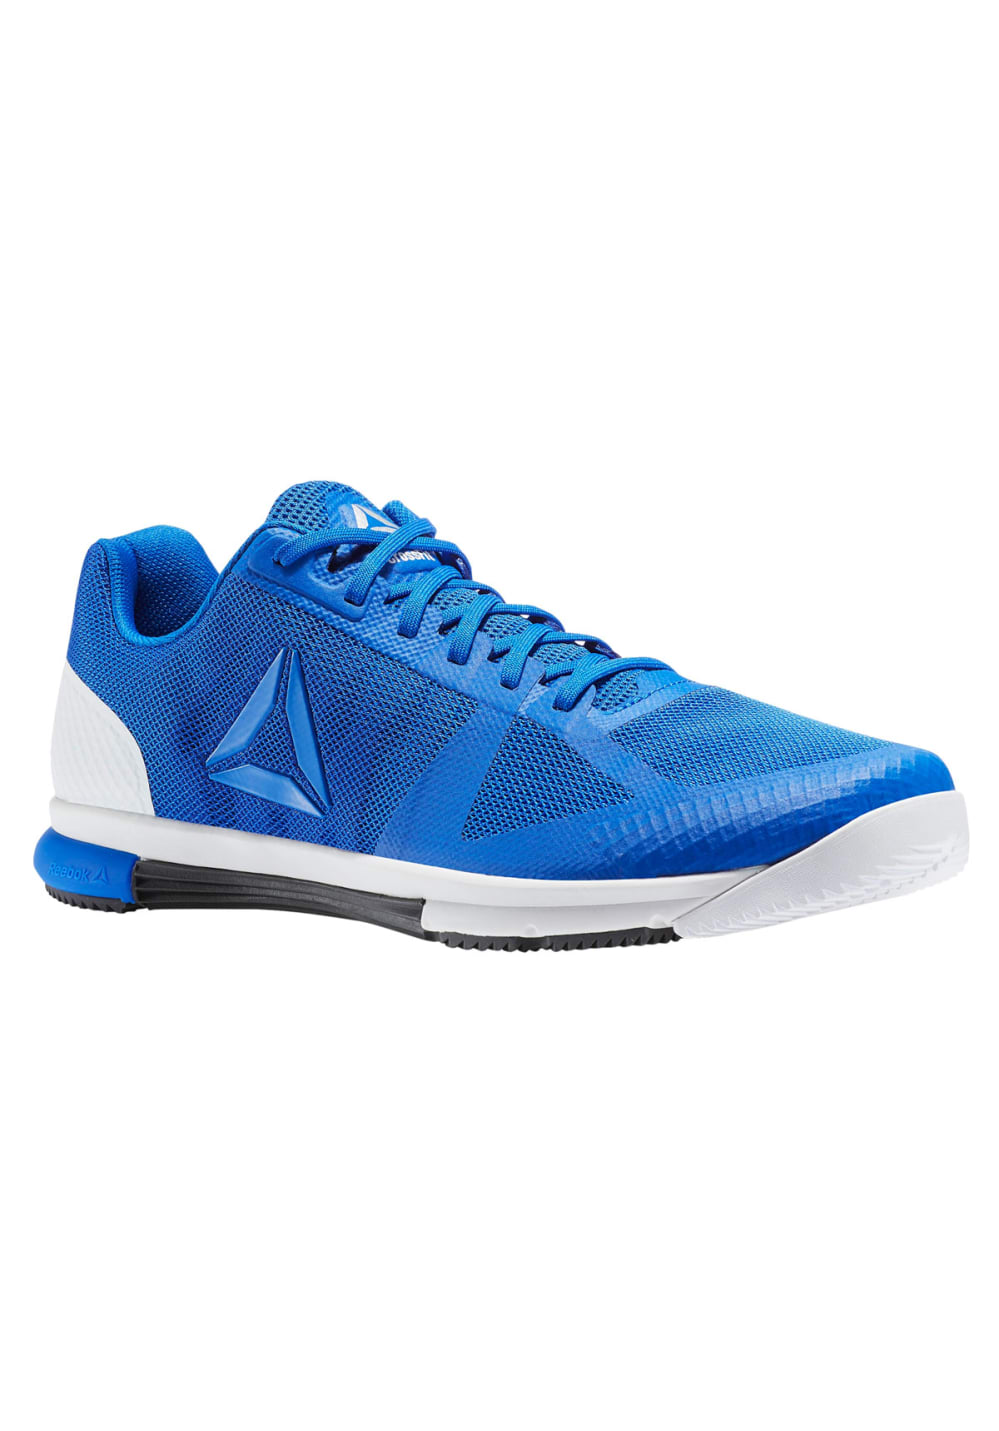 c60170b3506a33 Reebok R Crossfit Speed Tr 2.0 - Fitness shoes for Men - Blue